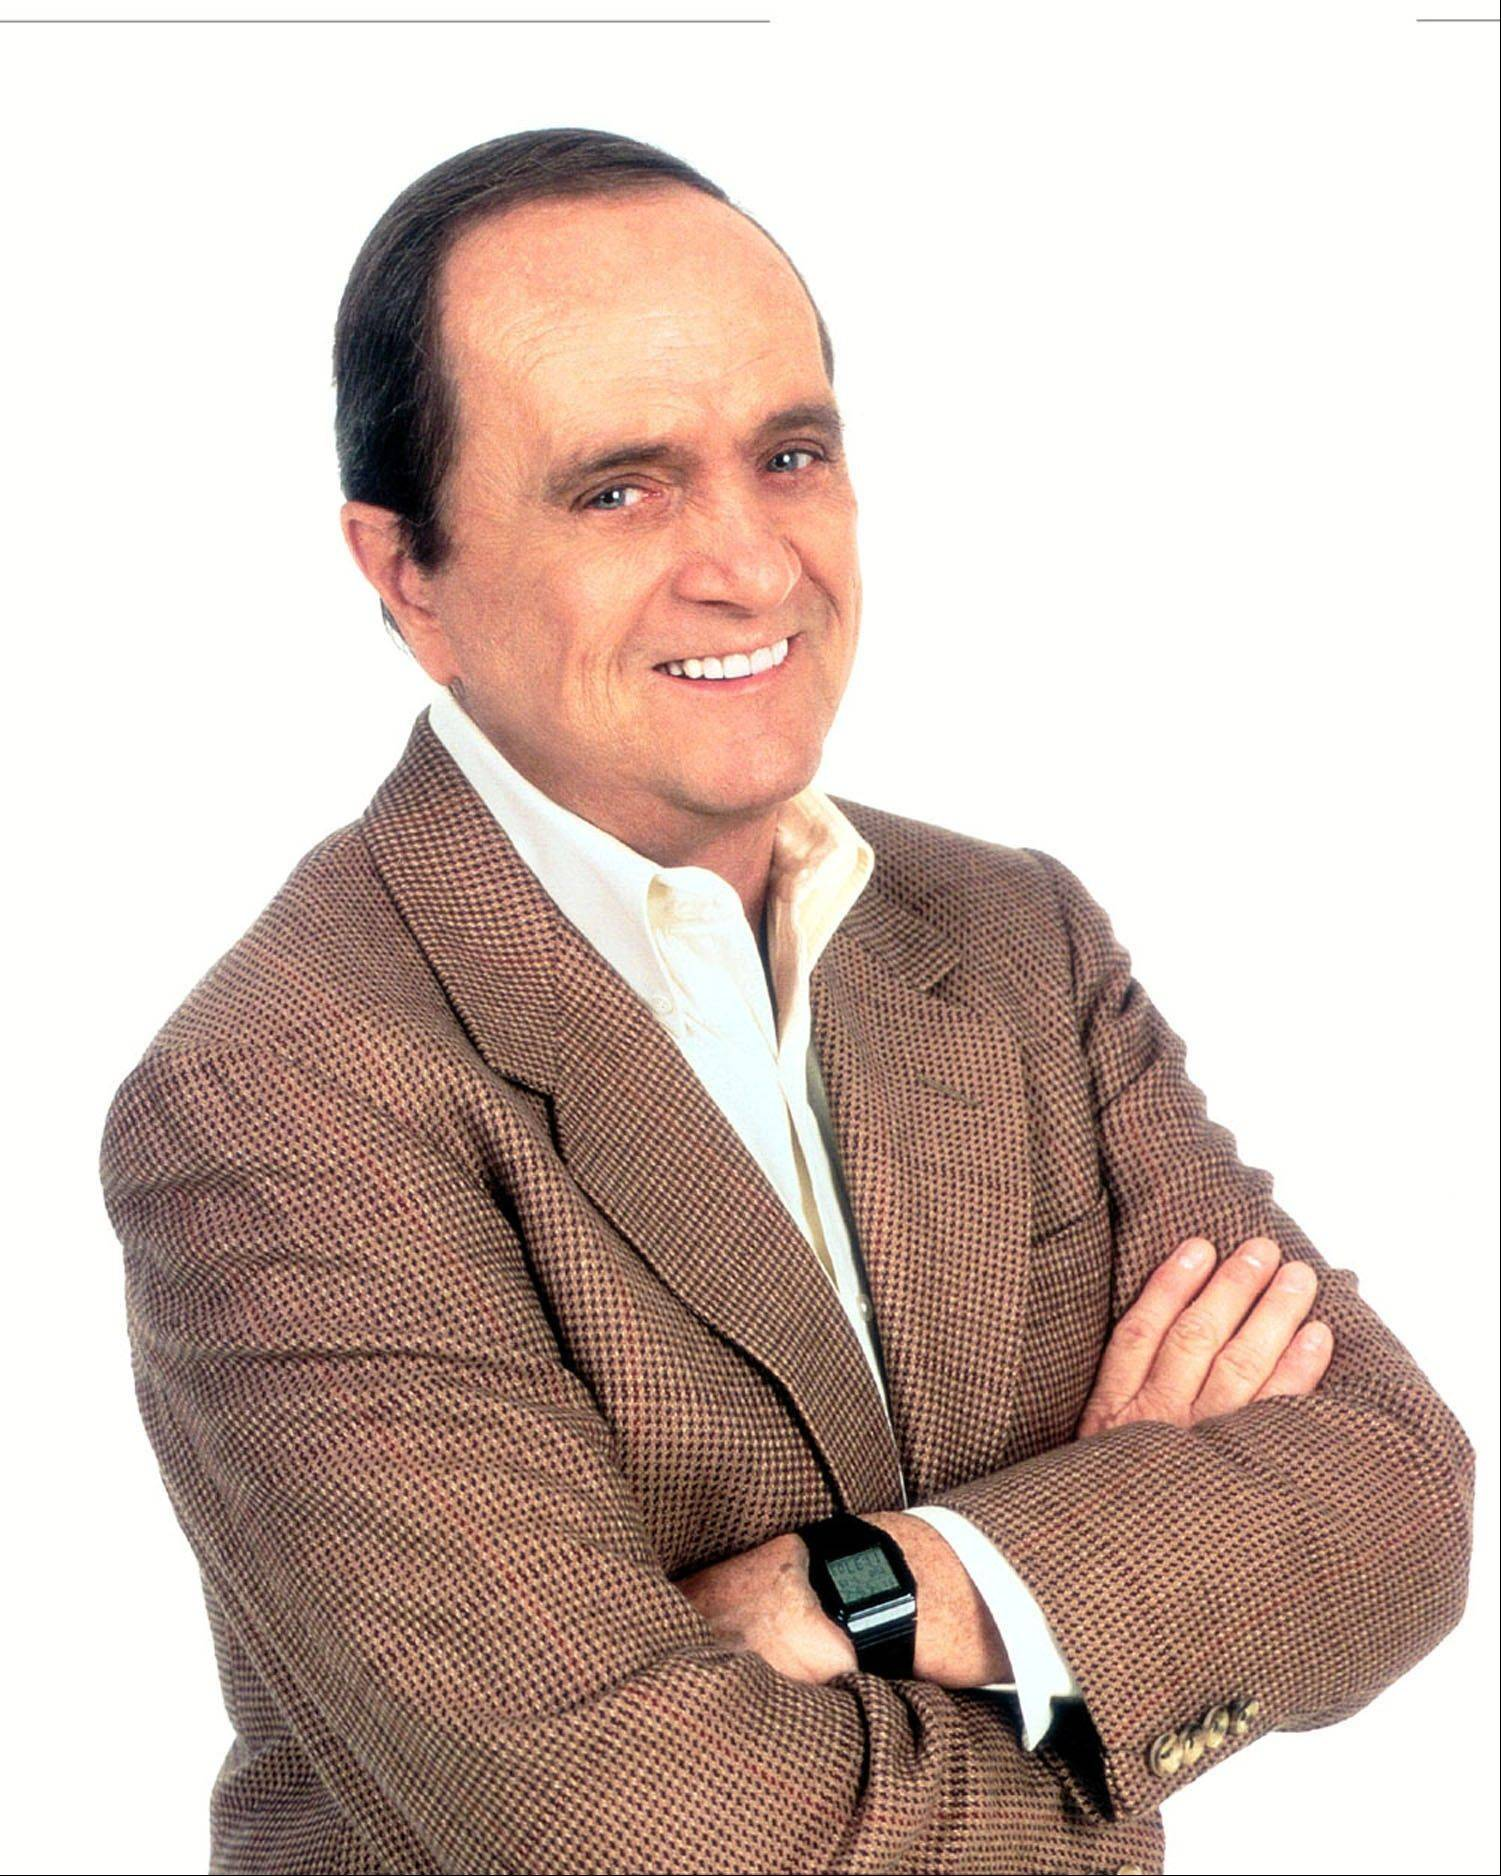 Bob Newhart appears at the Chicago Theatre as part of TBS Just for Laughs Chicago.